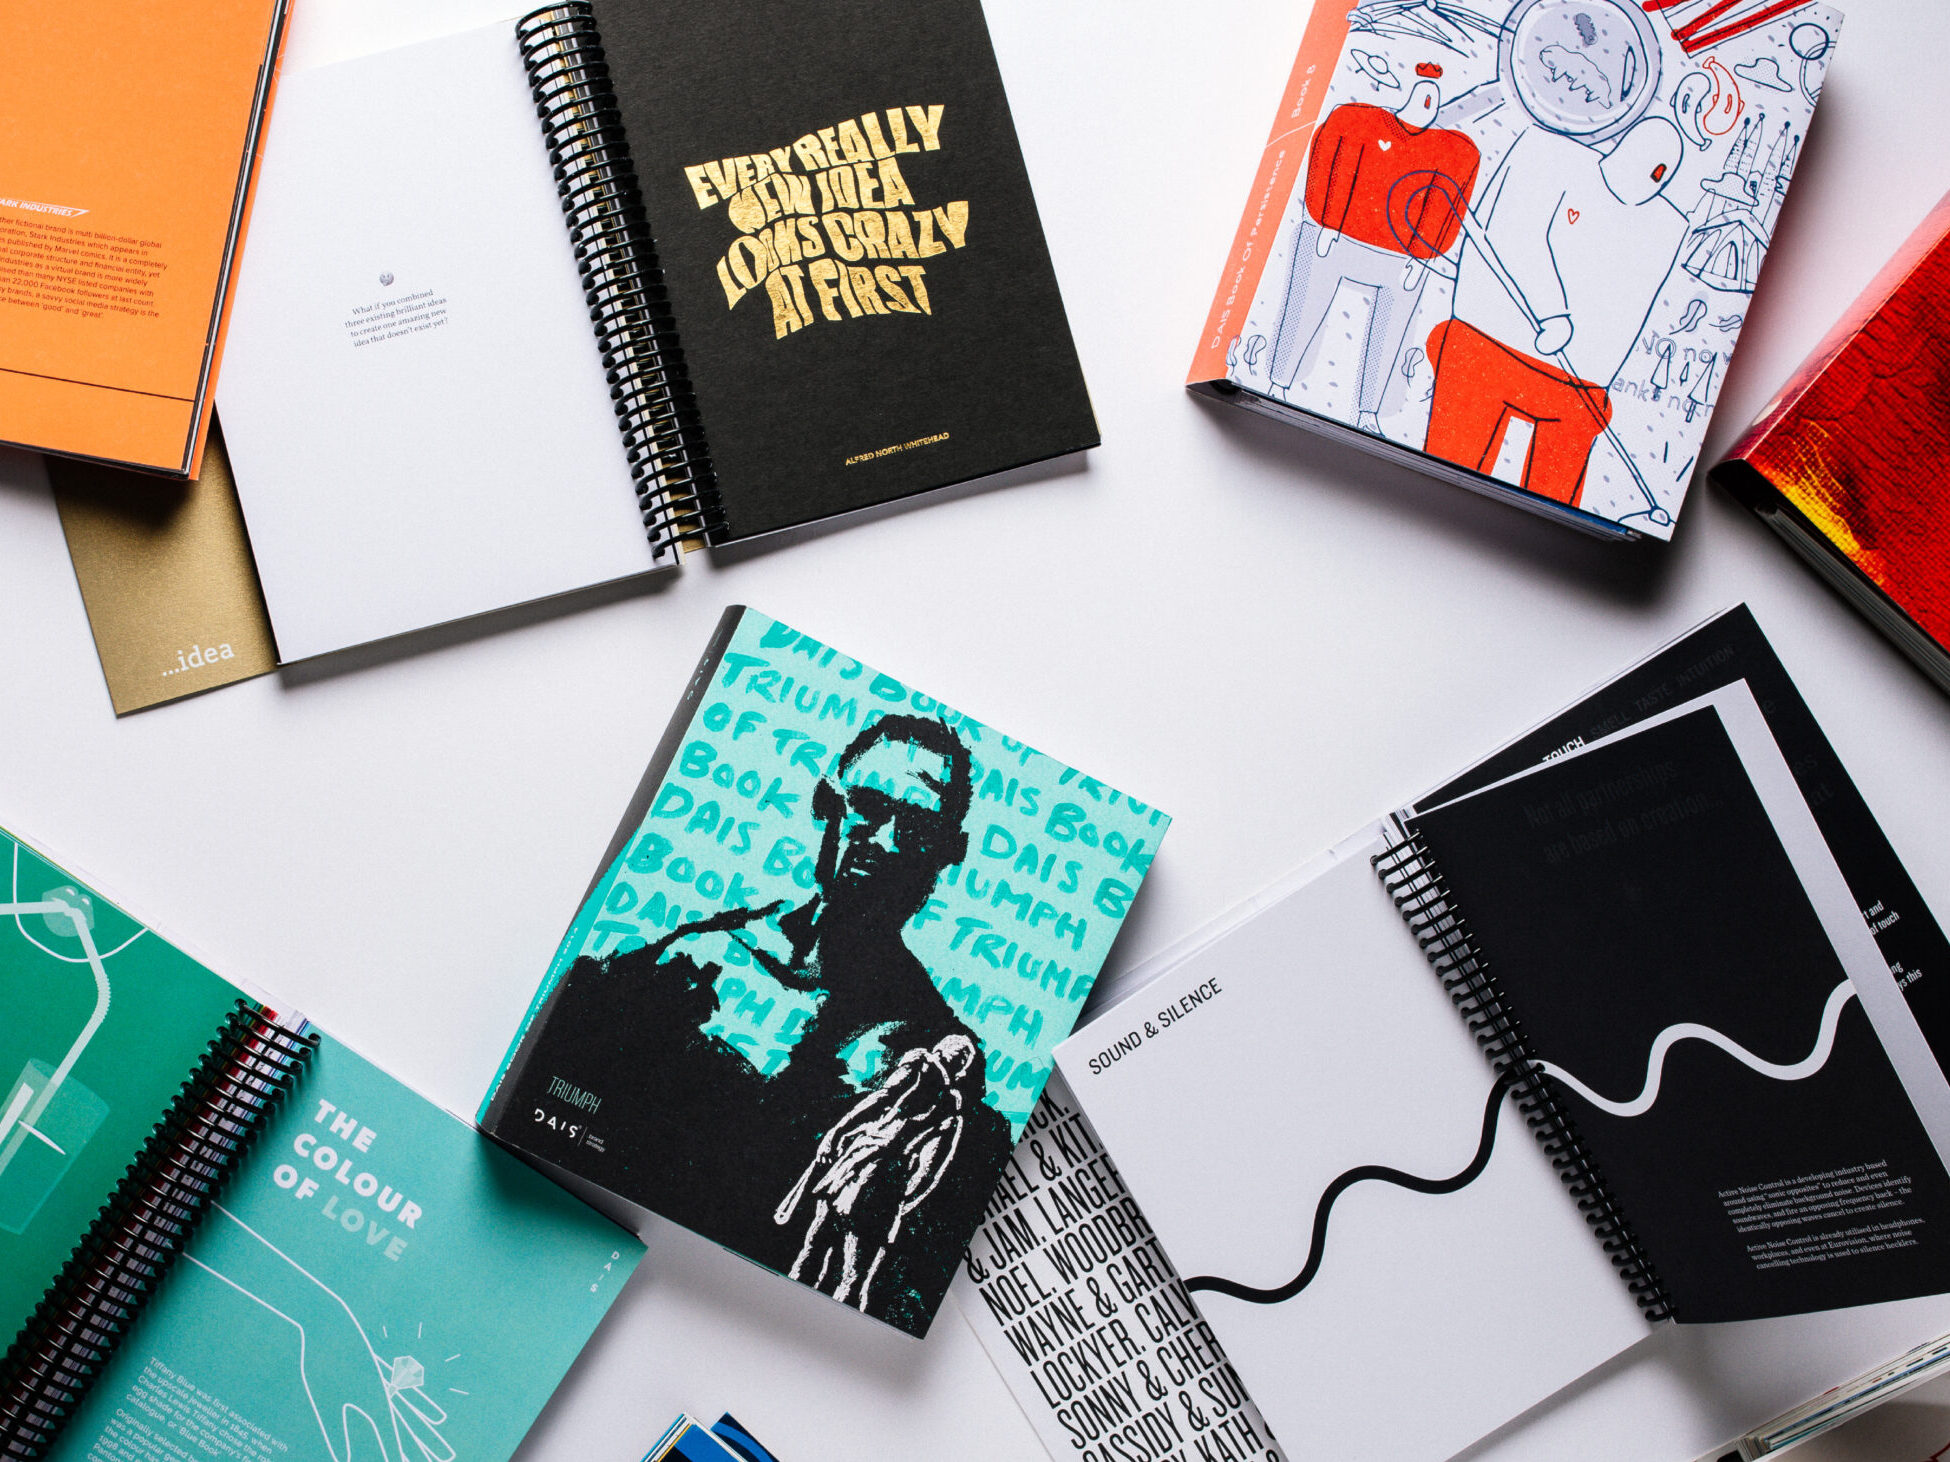 DAIS - Ten Year Project (2010 - 2019) Book Covers